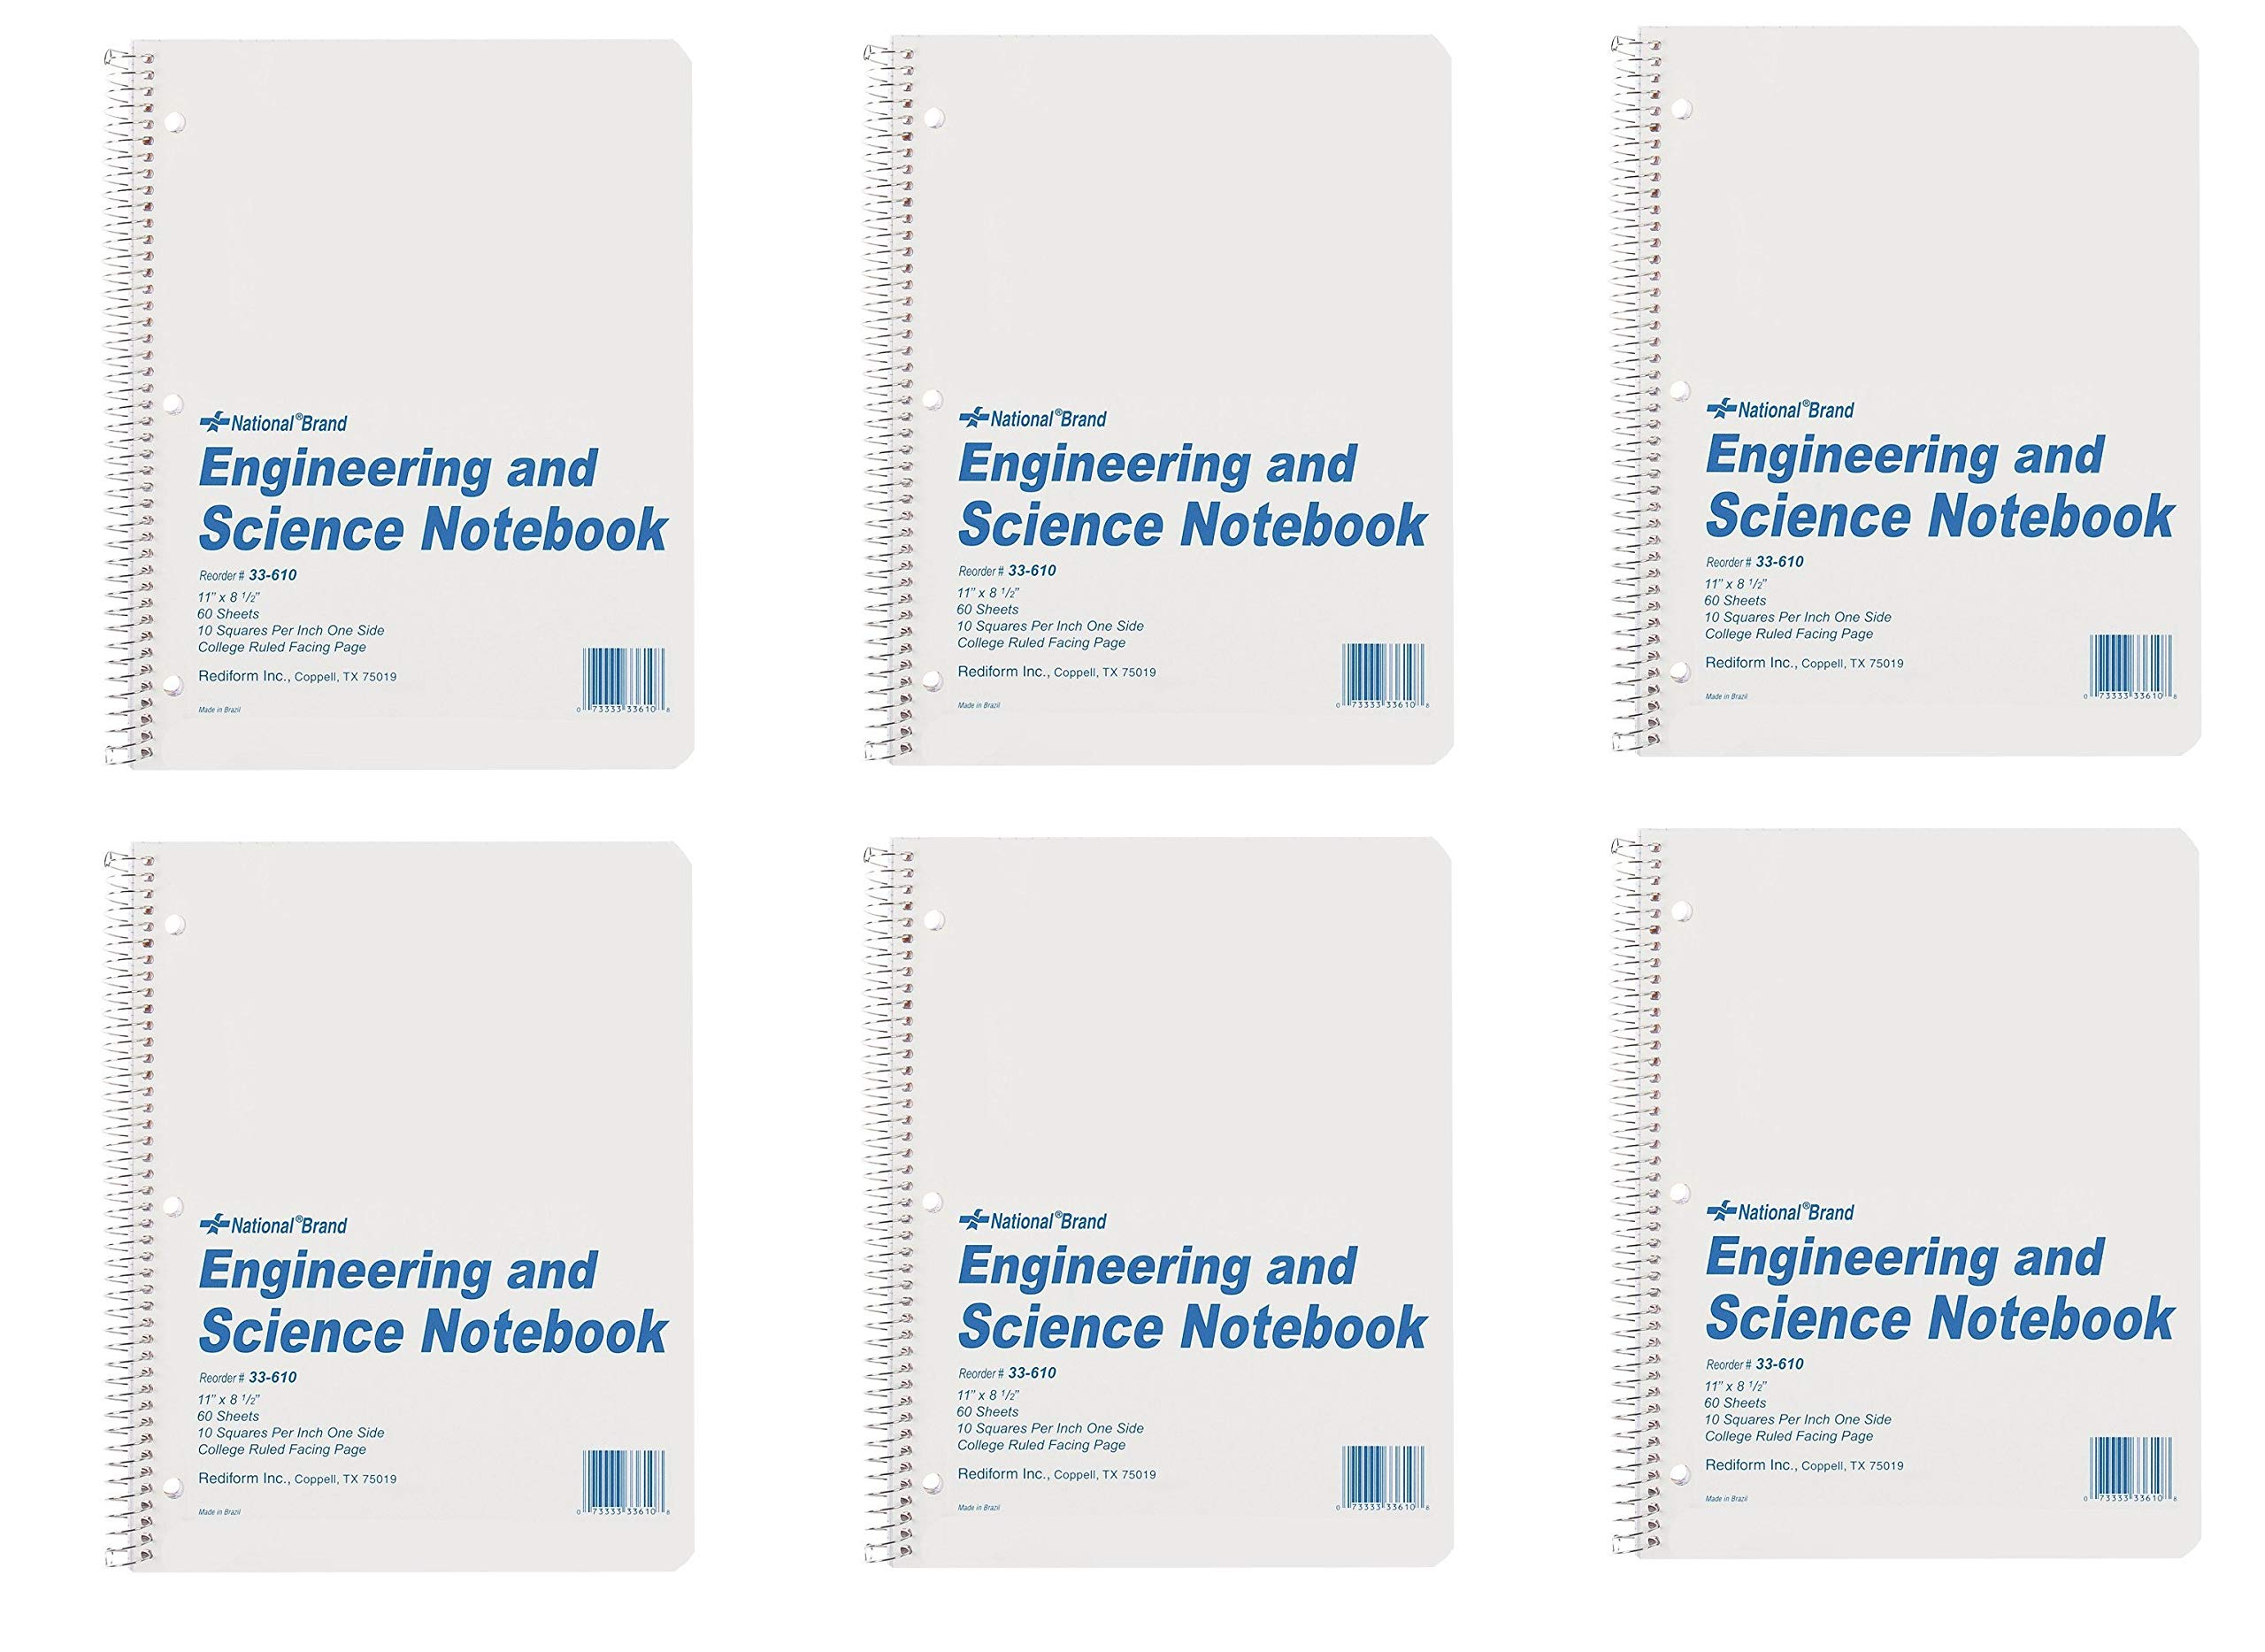 National Brand Engineering and Science Notebook, College with Margin and 10 X 10 Quad, White, 11 x 8.5 Inches, 60 Sheets (33610), 6 Packs by Rediform